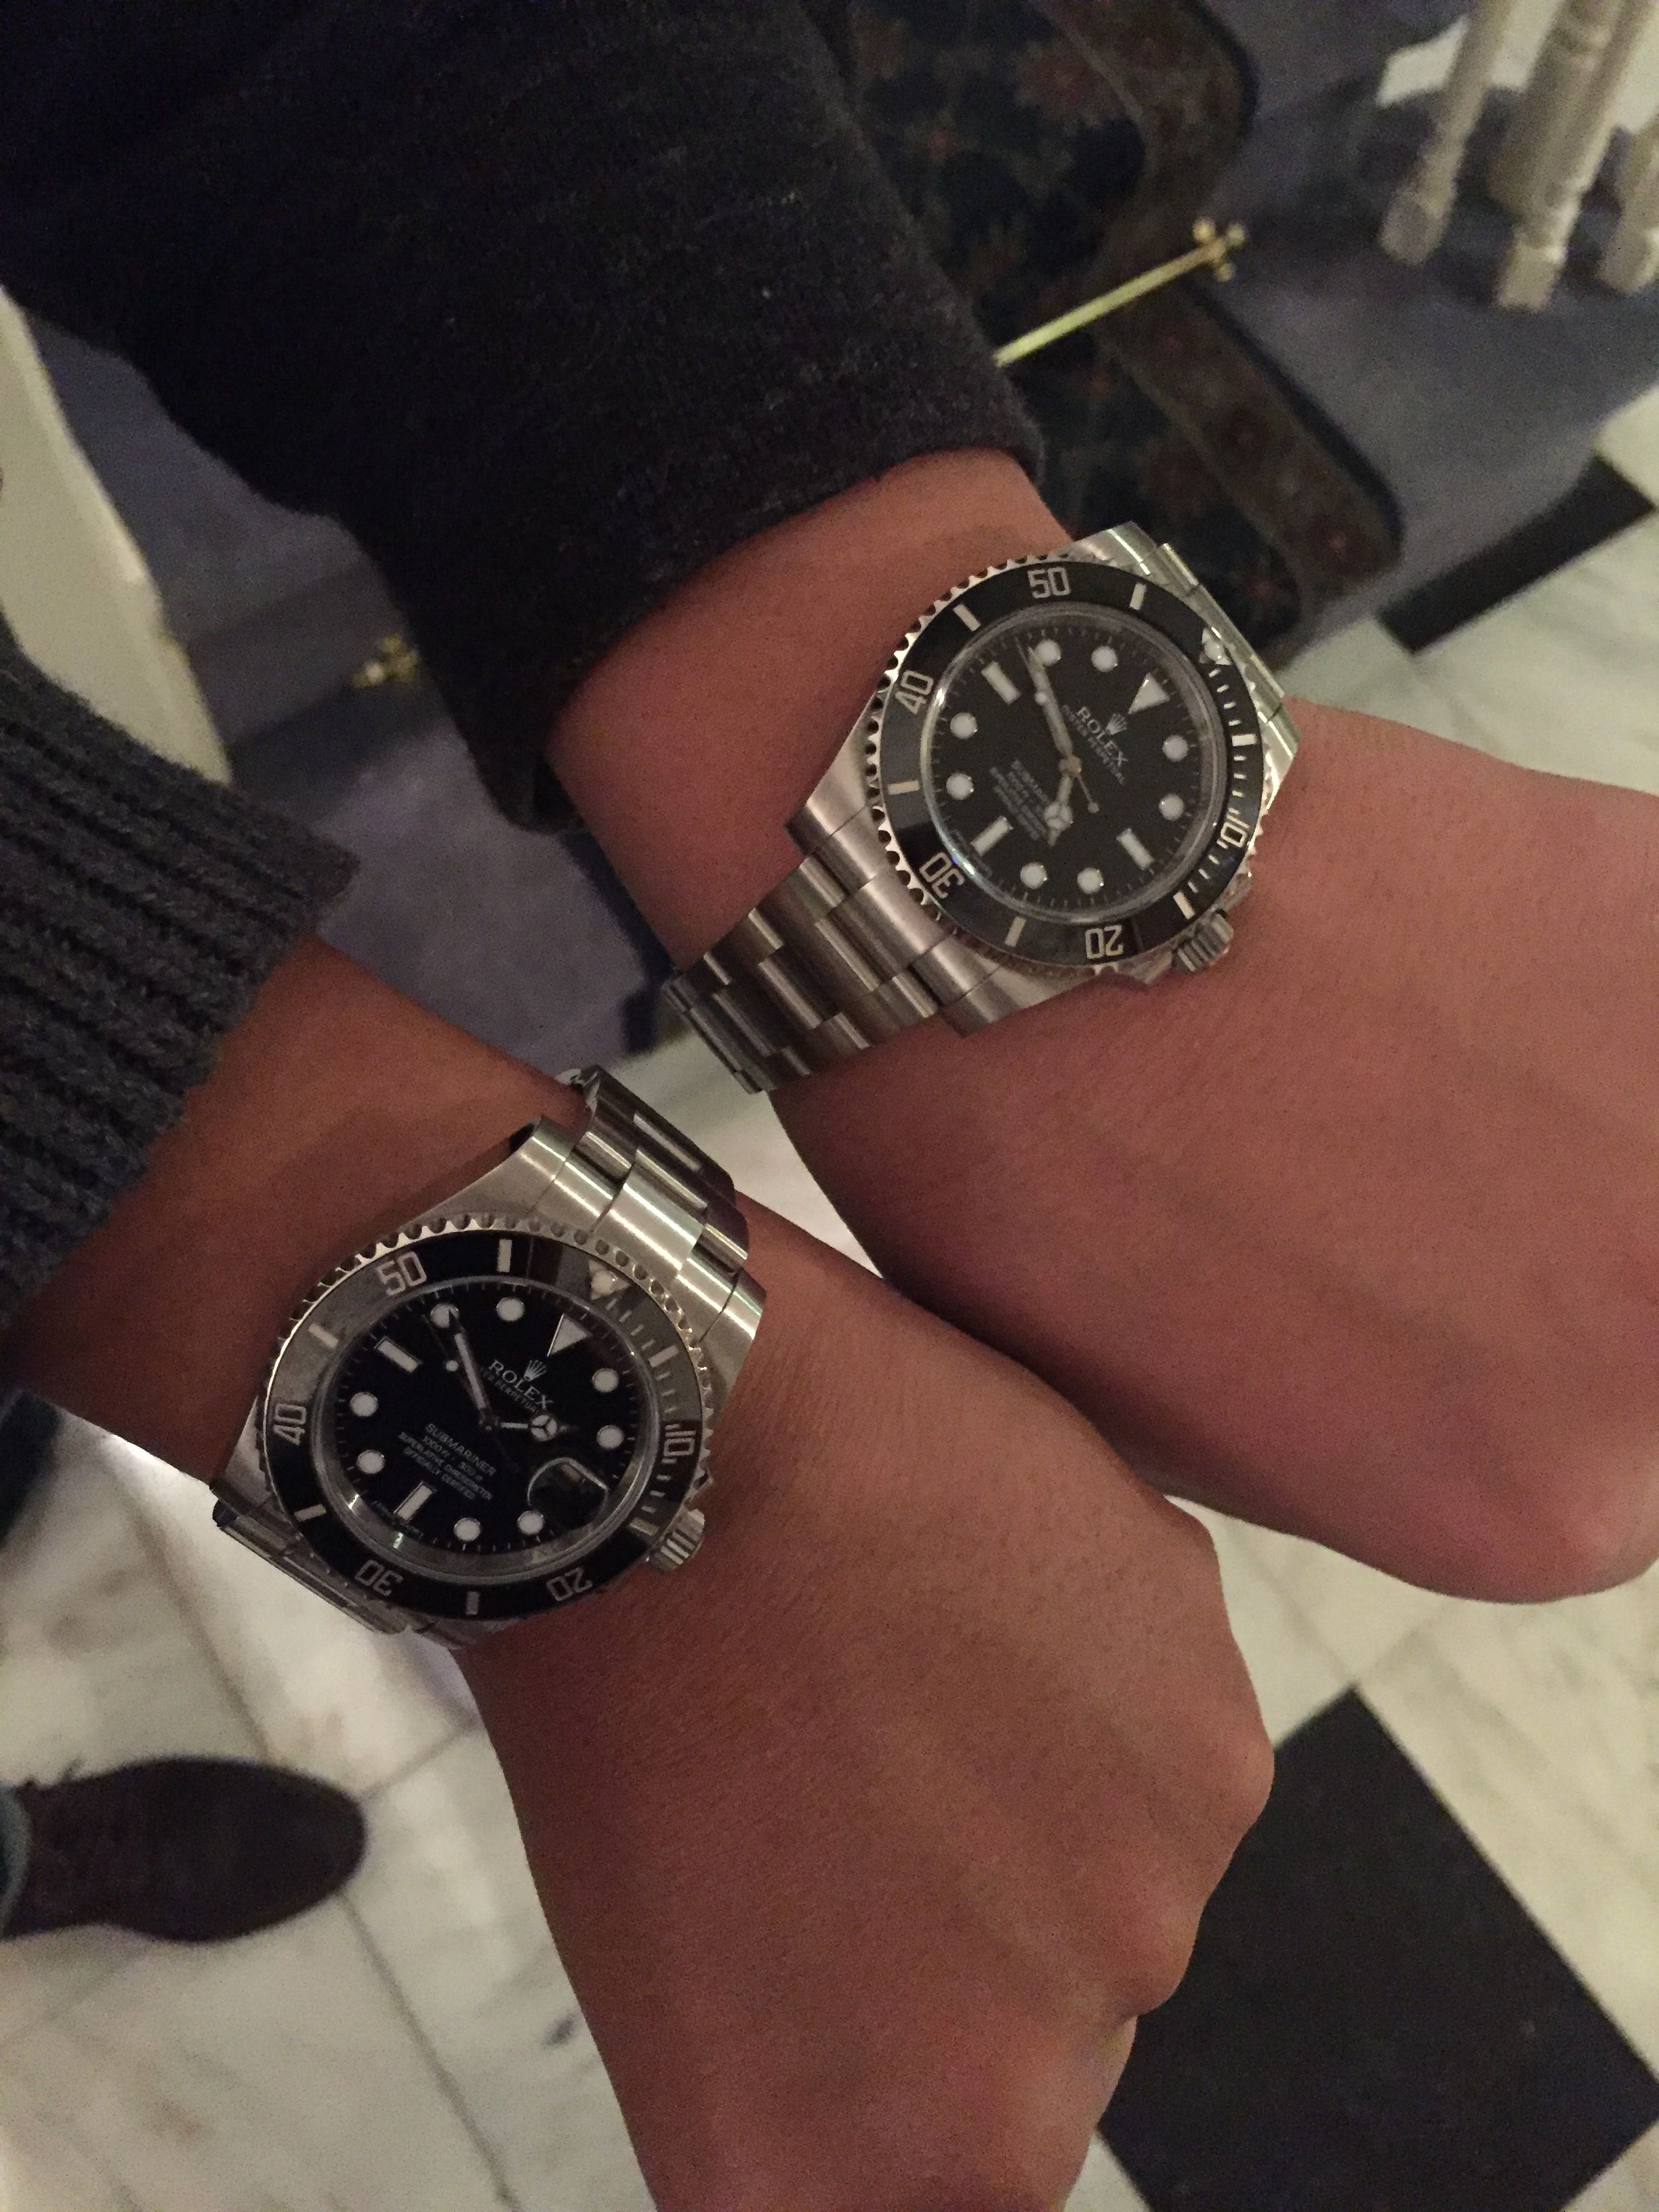 Sub C Date Vs No Rolex Watches Dating